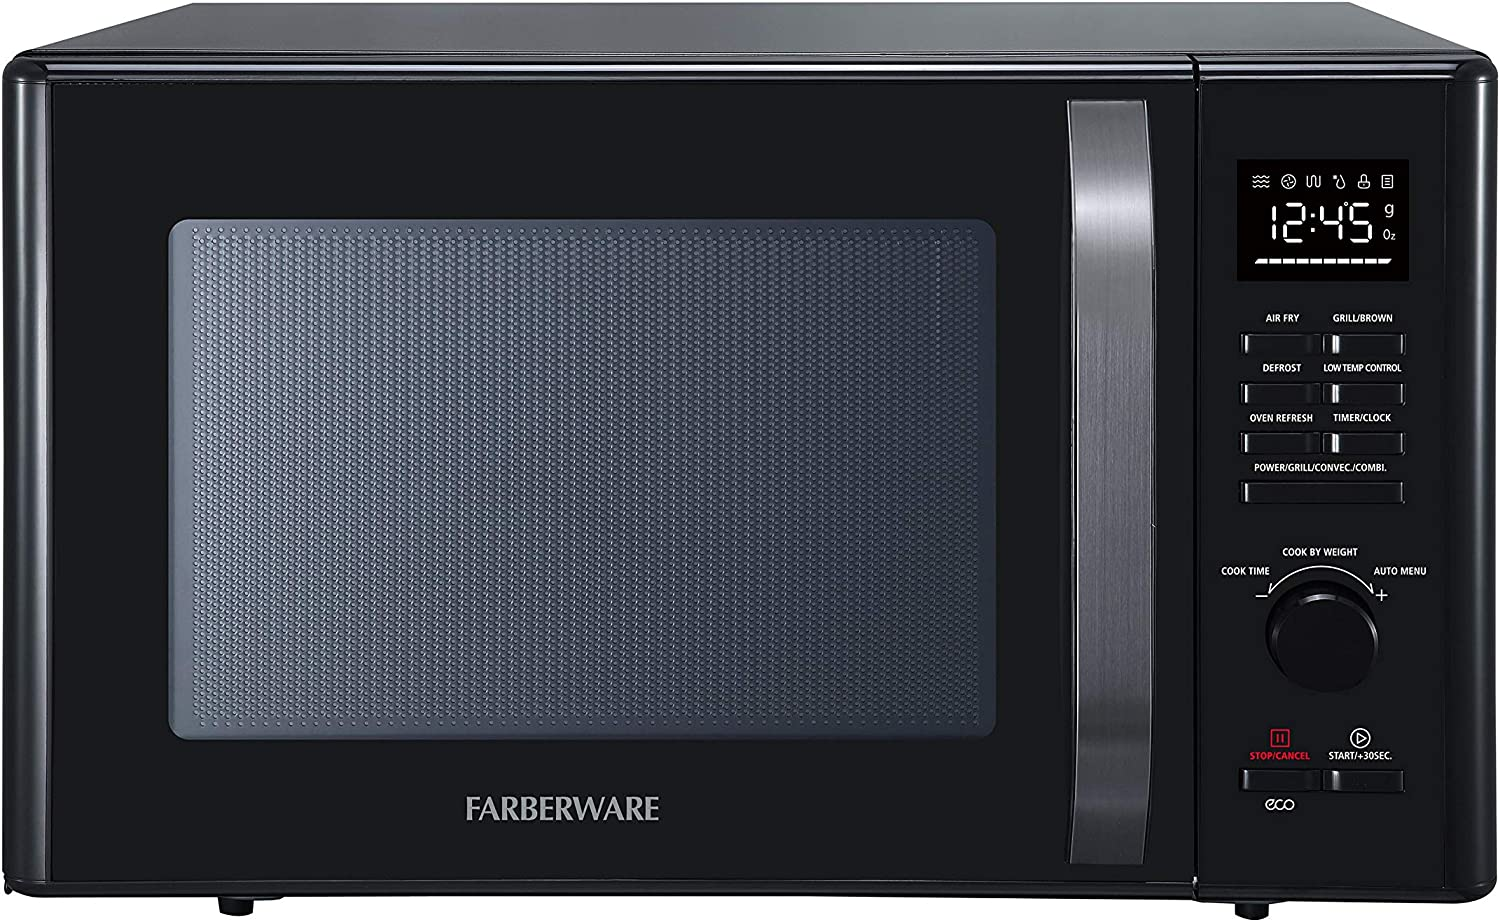 Farberware Black FMO10AHDBKC Convection Microwave Oven